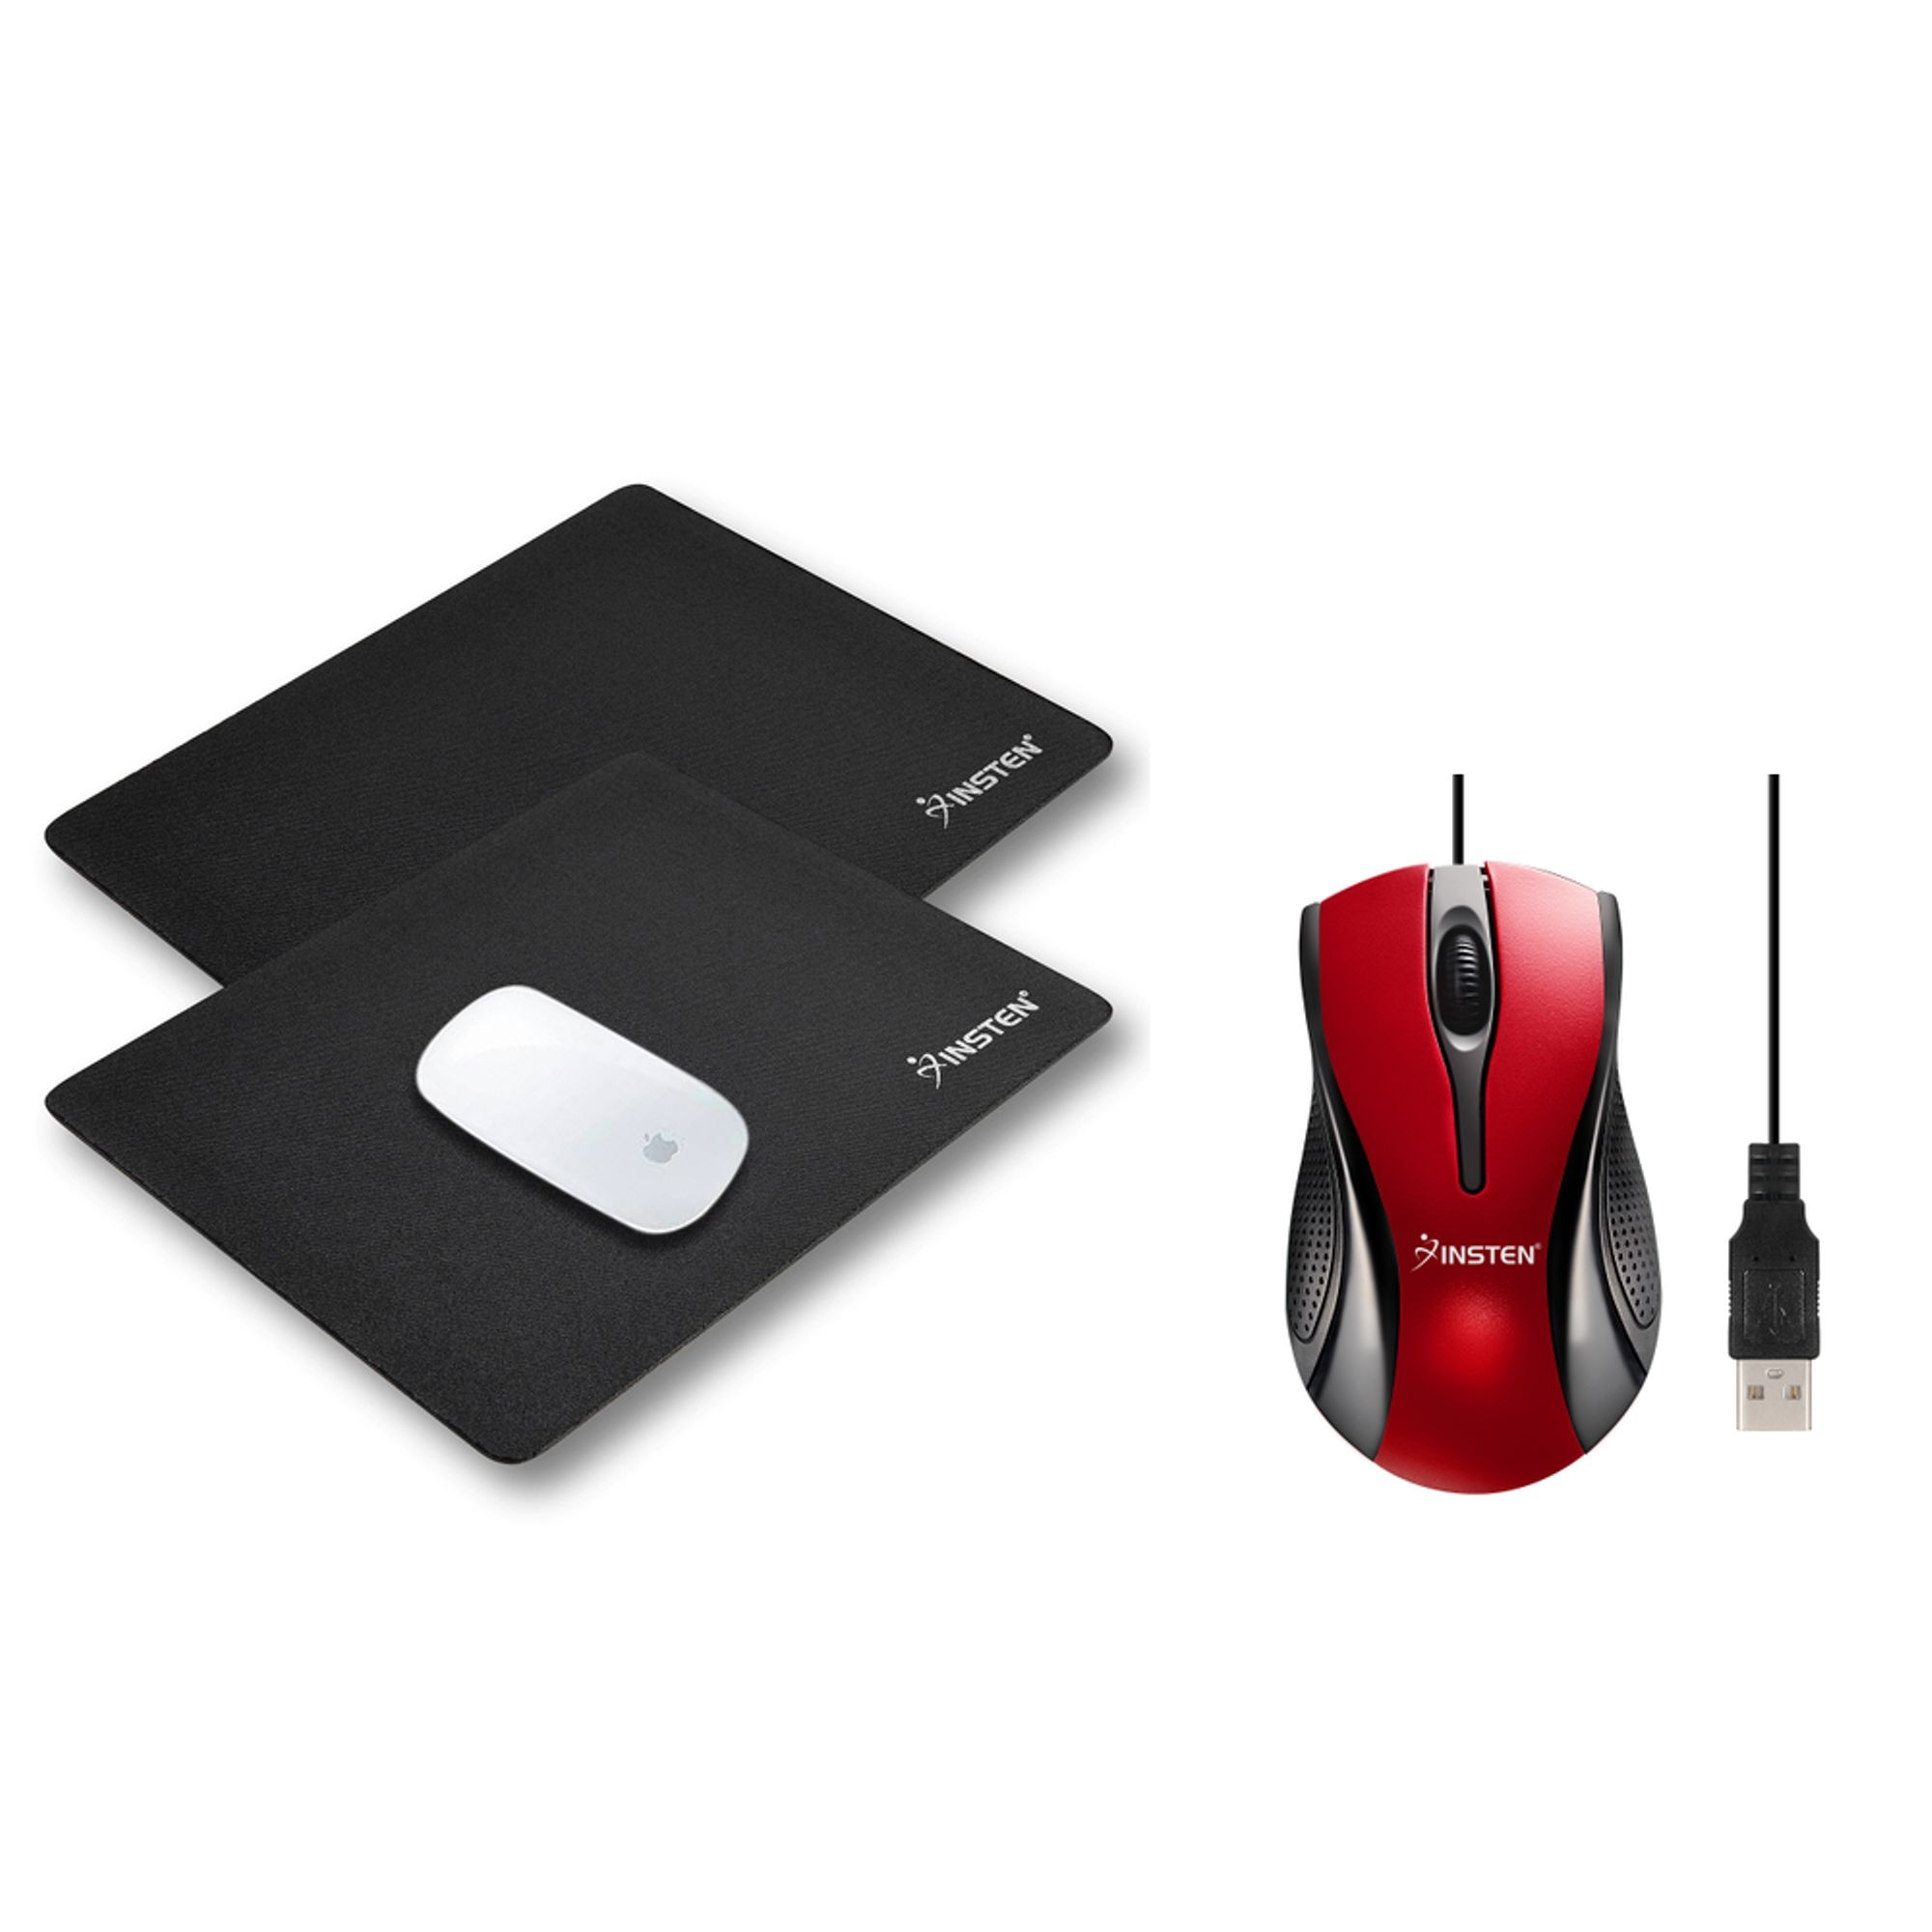 Insten 2pcs Mouse Pad for Laptop Computer Desk Black + Wired Optical Mouse USB Scroll Wheel Black/Red